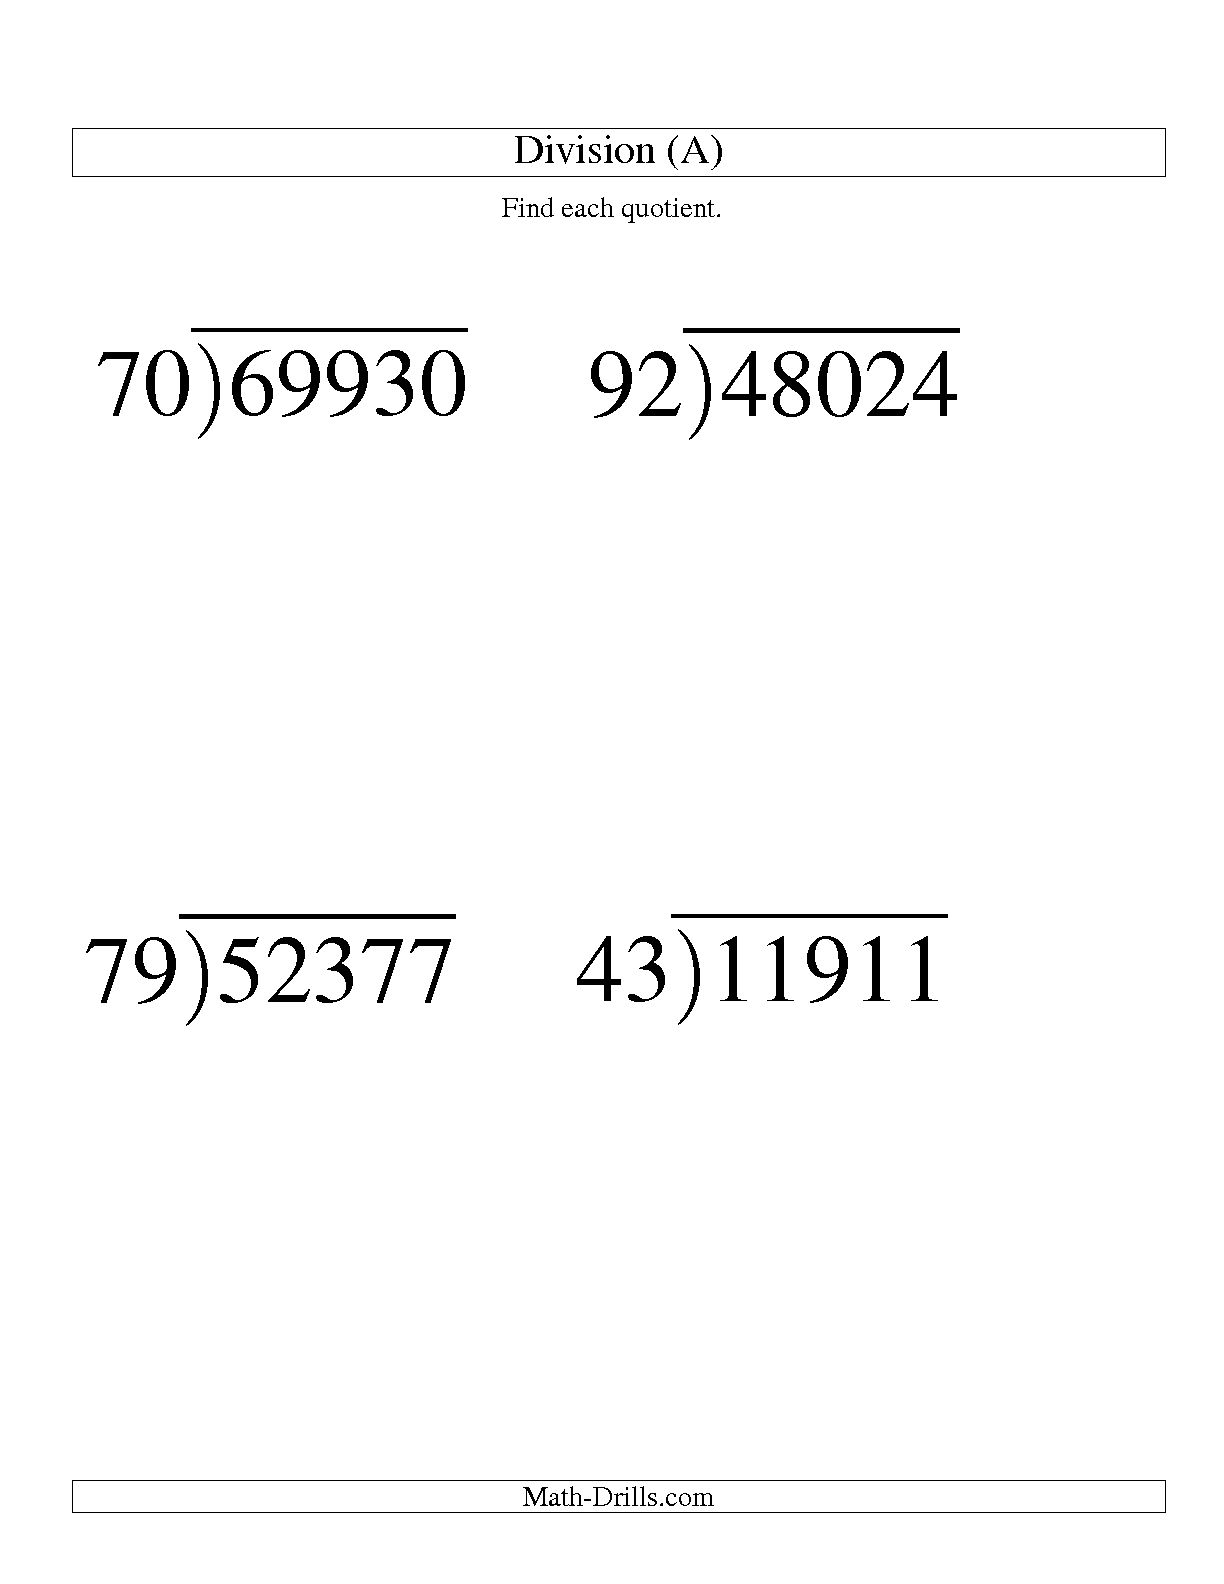 13 Best Images Of Division By 2 And 3 Worksheets